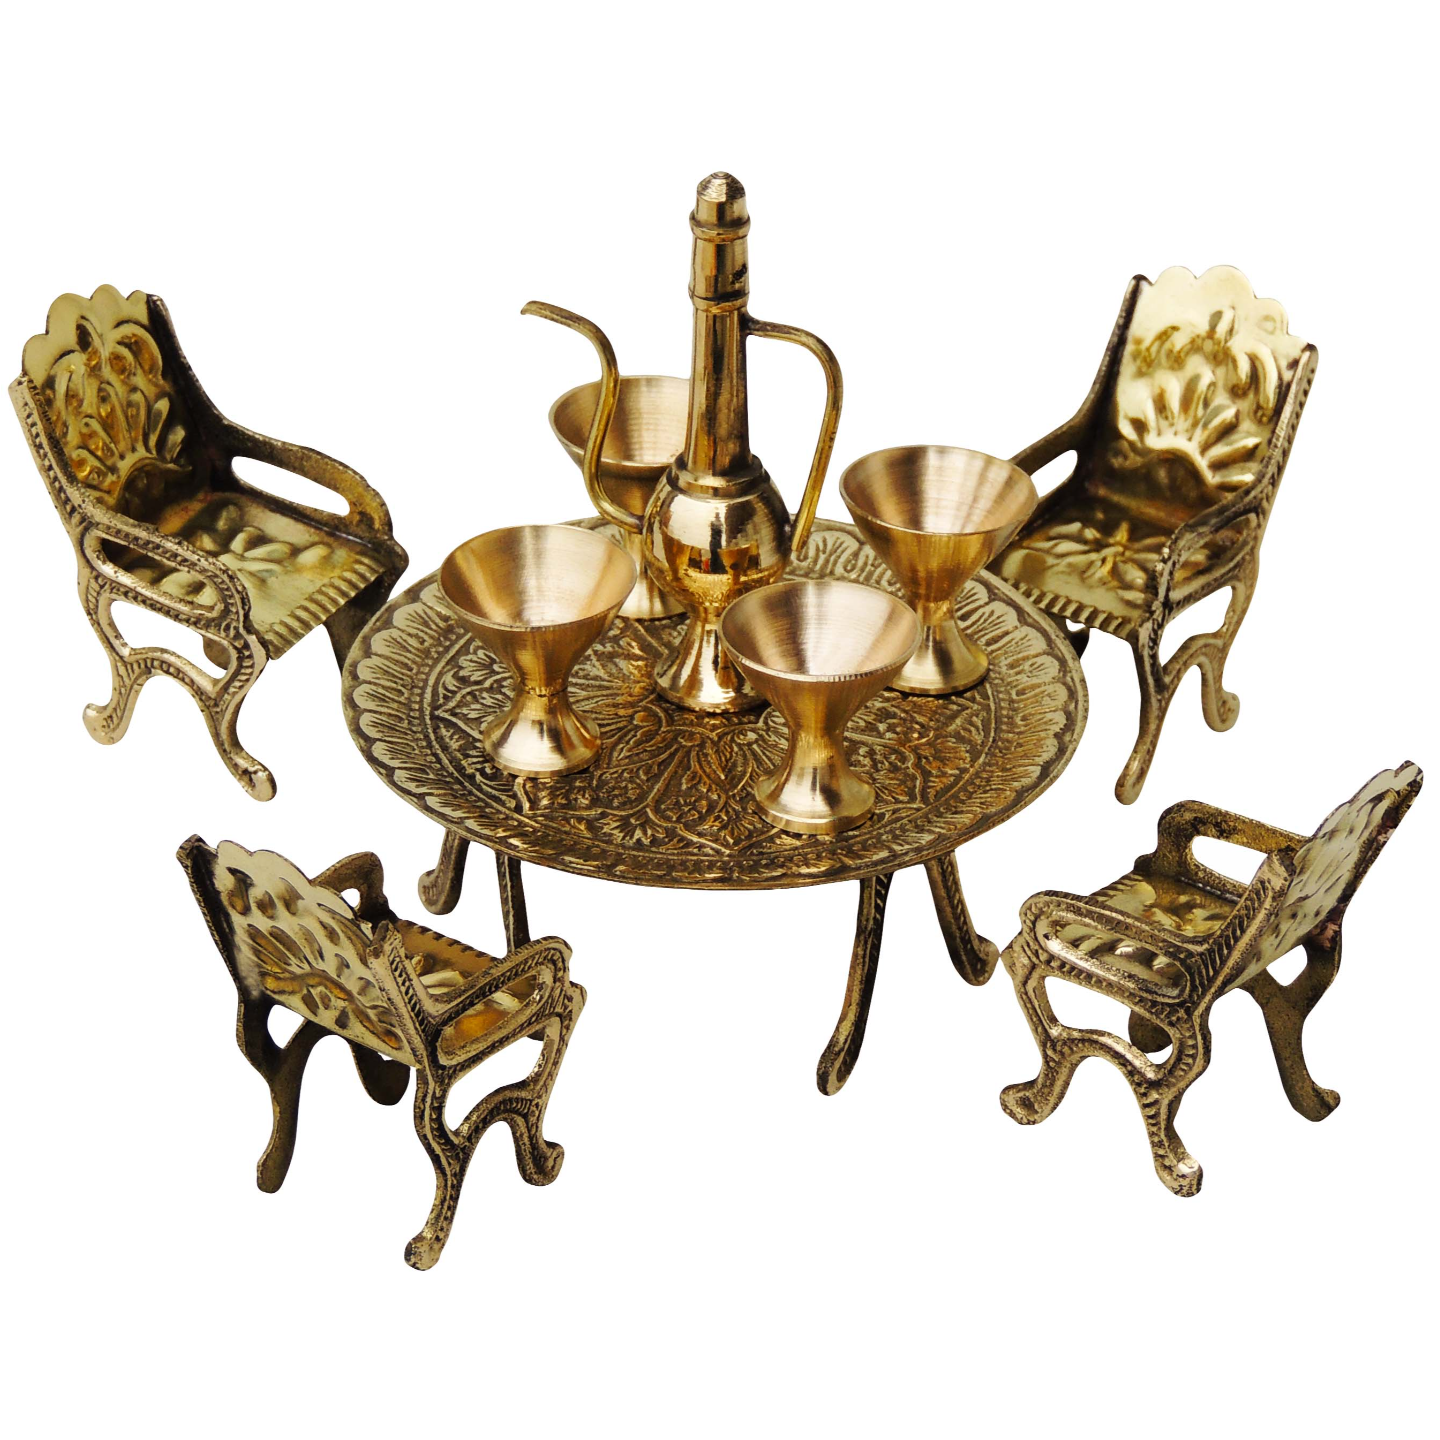 Brass Mini Miniature Dining Table set for Children playing (F484 A)